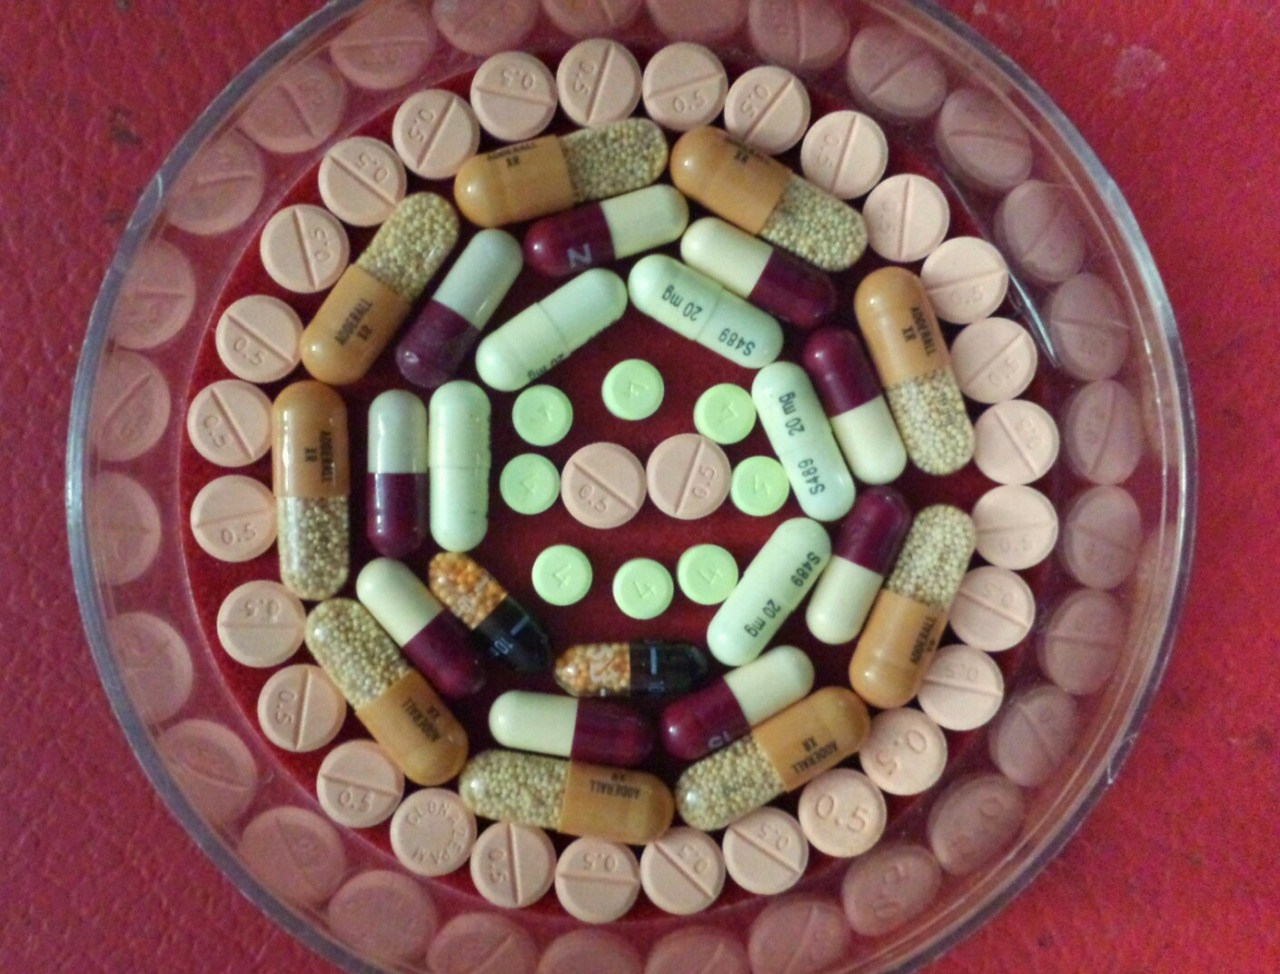 captain-sedation: special delivery! 0.5 mg clonazepam. 30 mg adderall. 15 mg temazepam.  20 mg vyvanse. 10 mg dexedrine. 4 mg dilaudid.